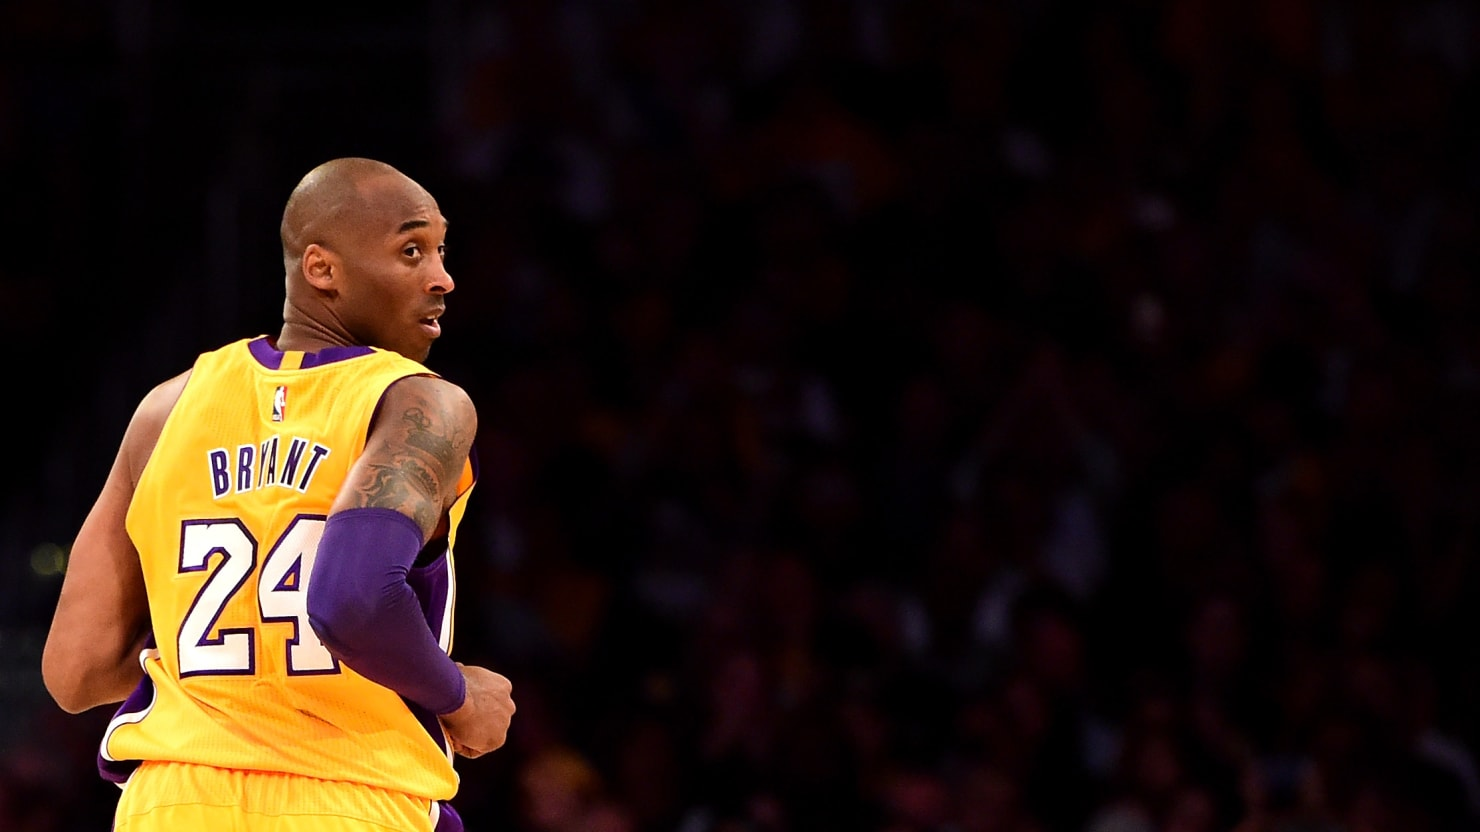 Kobe Bryant Reportedly Among 9 Killed in Helicopter Crash